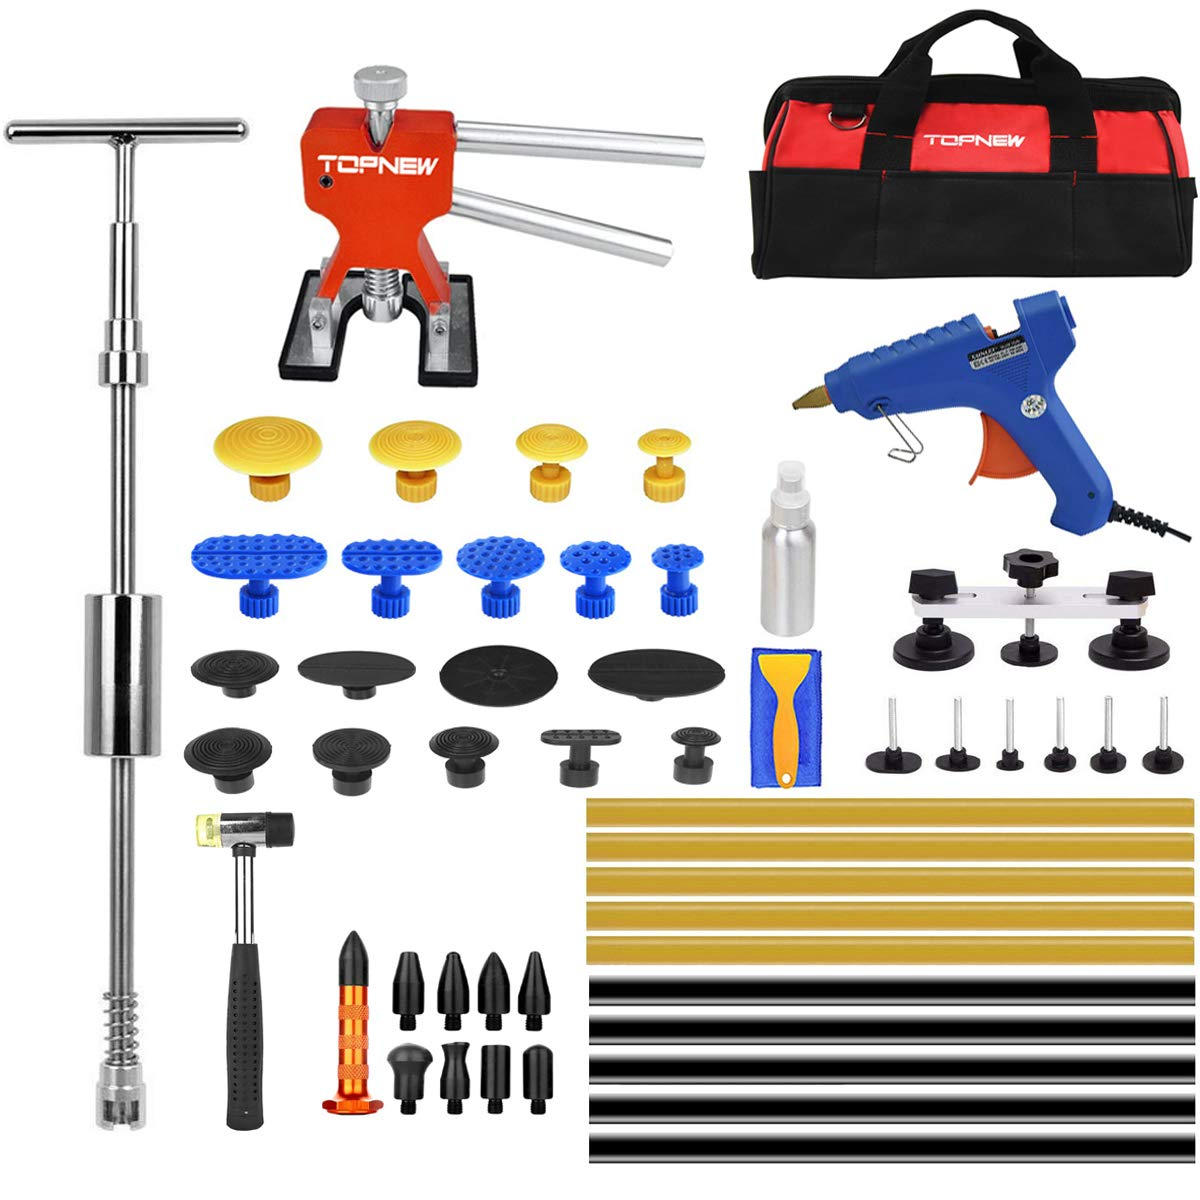 JMgist 52Pcs Auto Body Paintless Dent Repair Red Dent Lifter with Adjustable T-Bar Tool PDR for Car Motorcycle Refrigerator Washing Machine